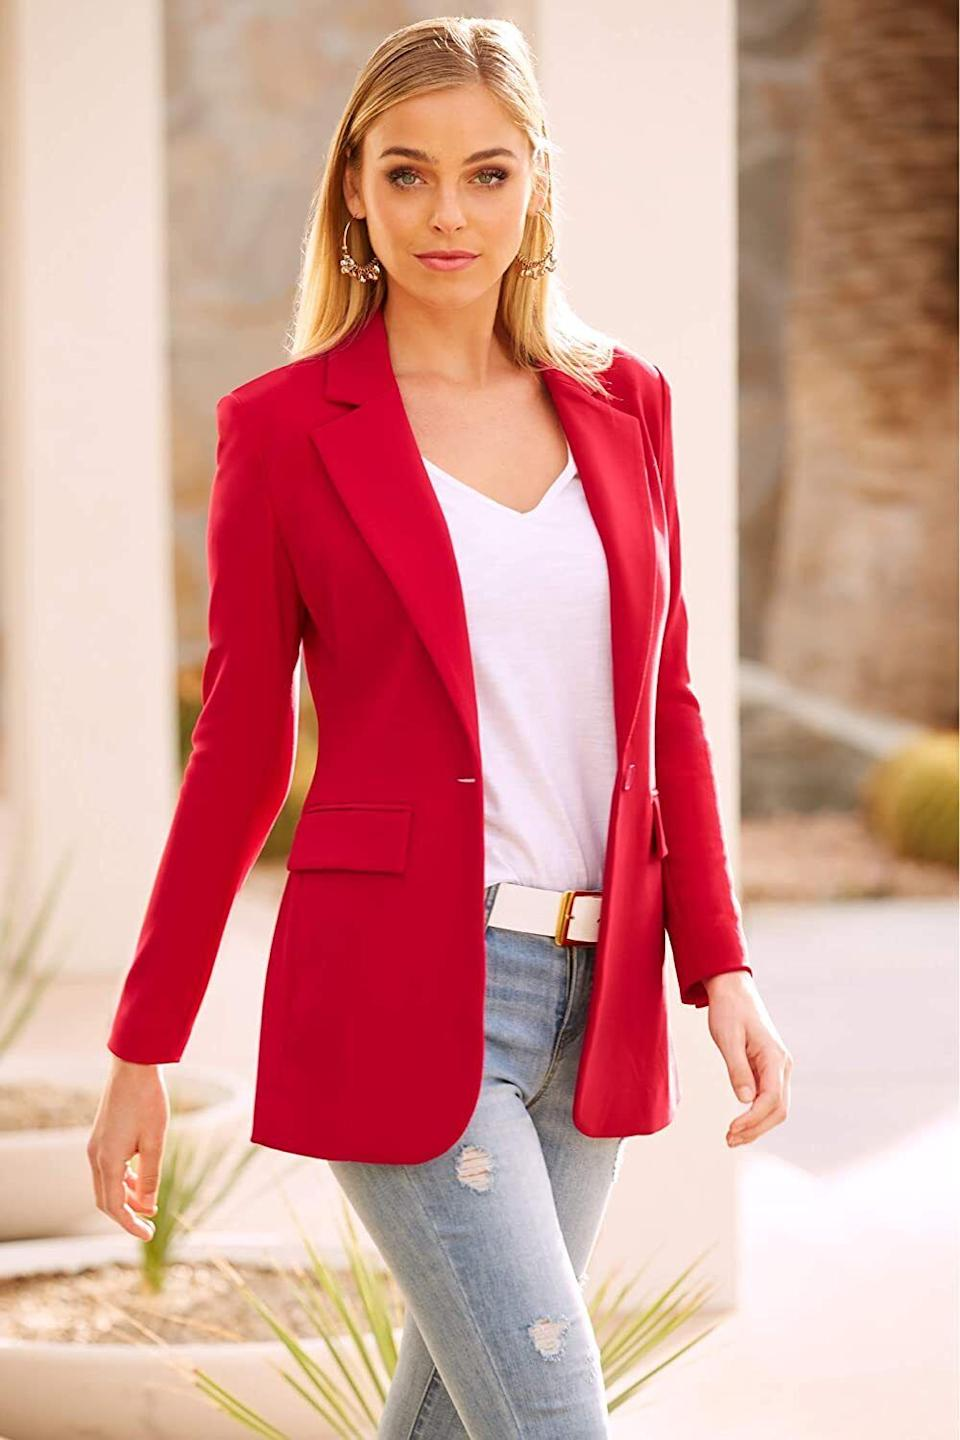 """Put this on to makeany outfit feel super professional — yes, even jeans and a T-shirt.<br /><br /><strong>Promising review:</strong>""""This jacket is worth every penny. It appears to be substantial and good quality, and the fit is great. It will undoubtedly be my favorite, most worn jacket. The a$$ -covering length is perfect for polishing tunic blouses and slim pants and jeans."""" —<a href=""""https://amzn.to/3tqz3YS"""" target=""""_blank"""" rel=""""nofollow noopener noreferrer"""" data-skimlinks-tracking=""""5753950"""" data-vars-affiliate=""""Amazon"""" data-vars-href=""""https://www.amazon.com/gp/customer-reviews/RST60R7XNS05J?tag=bfabby-20&ascsubtag=5753950%2C22%2C30%2Cmobile_web%2C0%2C0%2C0"""" data-vars-keywords=""""cleaning,fast fashion"""" data-vars-link-id=""""0"""" data-vars-price="""""""" data-vars-retailers=""""Amazon"""">A. Brown</a><br /><br /><strong>Get it from Amazon for<a href=""""https://amzn.to/3drkG10"""" target=""""_blank"""" rel=""""nofollow noopener noreferrer"""" data-skimlinks-tracking=""""5753950"""" data-vars-affiliate=""""Amazon"""" data-vars-asin=""""B07TLVW2PM"""" data-vars-href=""""https://www.amazon.com/dp/B07TLVW2PM?tag=bfabby-20&ascsubtag=5753950%2C22%2C30%2Cmobile_web%2C0%2C0%2C15956603"""" data-vars-keywords=""""cleaning,fast fashion"""" data-vars-link-id=""""15956603"""" data-vars-price="""""""" data-vars-product-id=""""18217881"""" data-vars-product-img=""""https://m.media-amazon.com/images/I/41JScp7NaDL.jpg"""" data-vars-product-title=""""Boston Proper - Beyond Travel - Women's One Button Knit Boyfriend Blazer"""" data-vars-retailers=""""Amazon"""">$98.50</a>(available in sizes 0-18 and in nine colors).</strong>"""